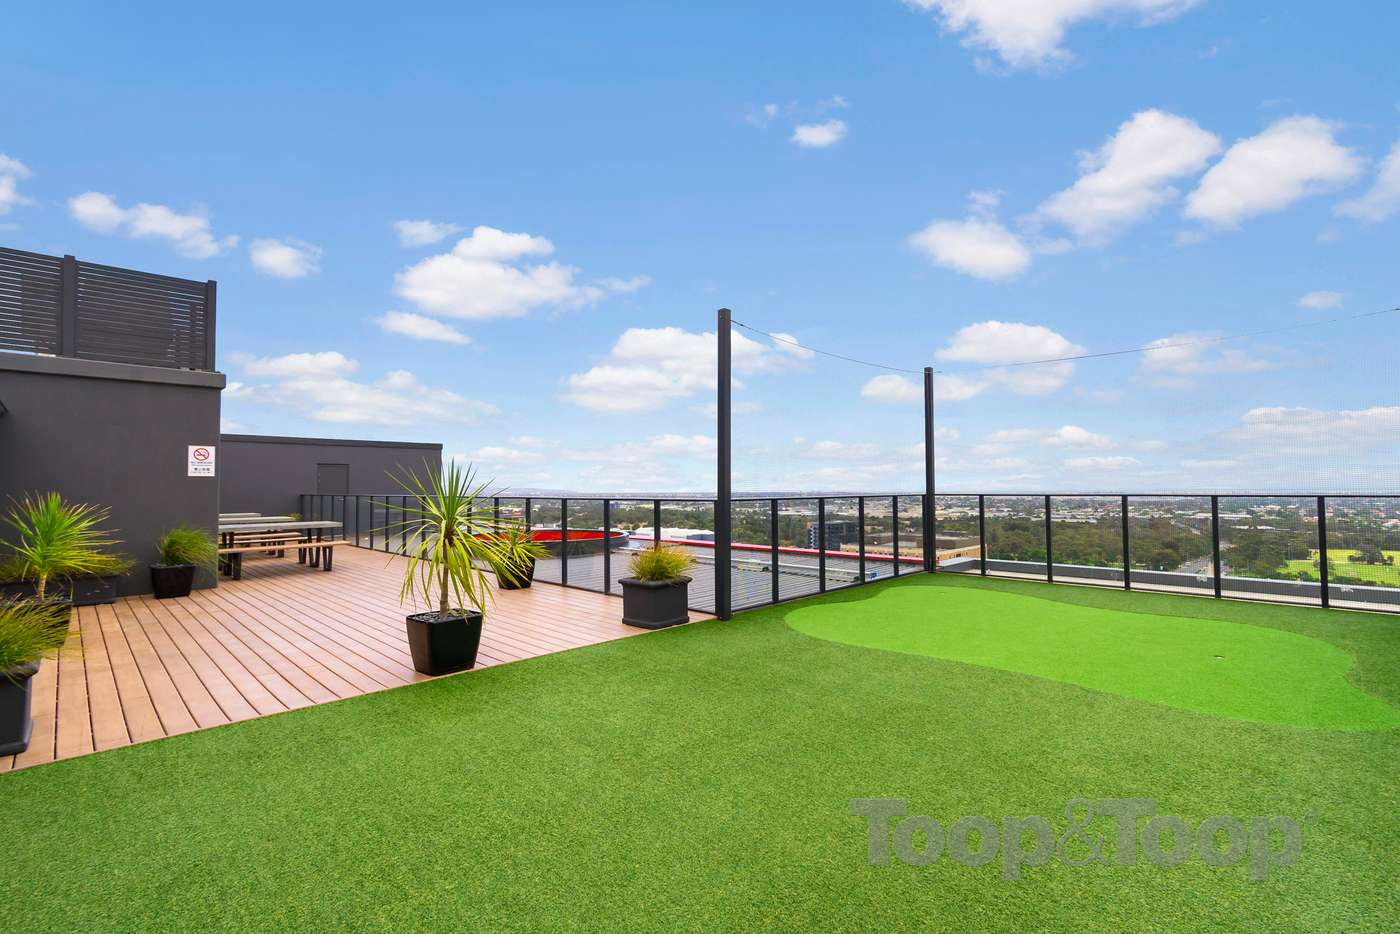 Main view of Homely apartment listing, 517/160 Grote Street, Adelaide SA 5000